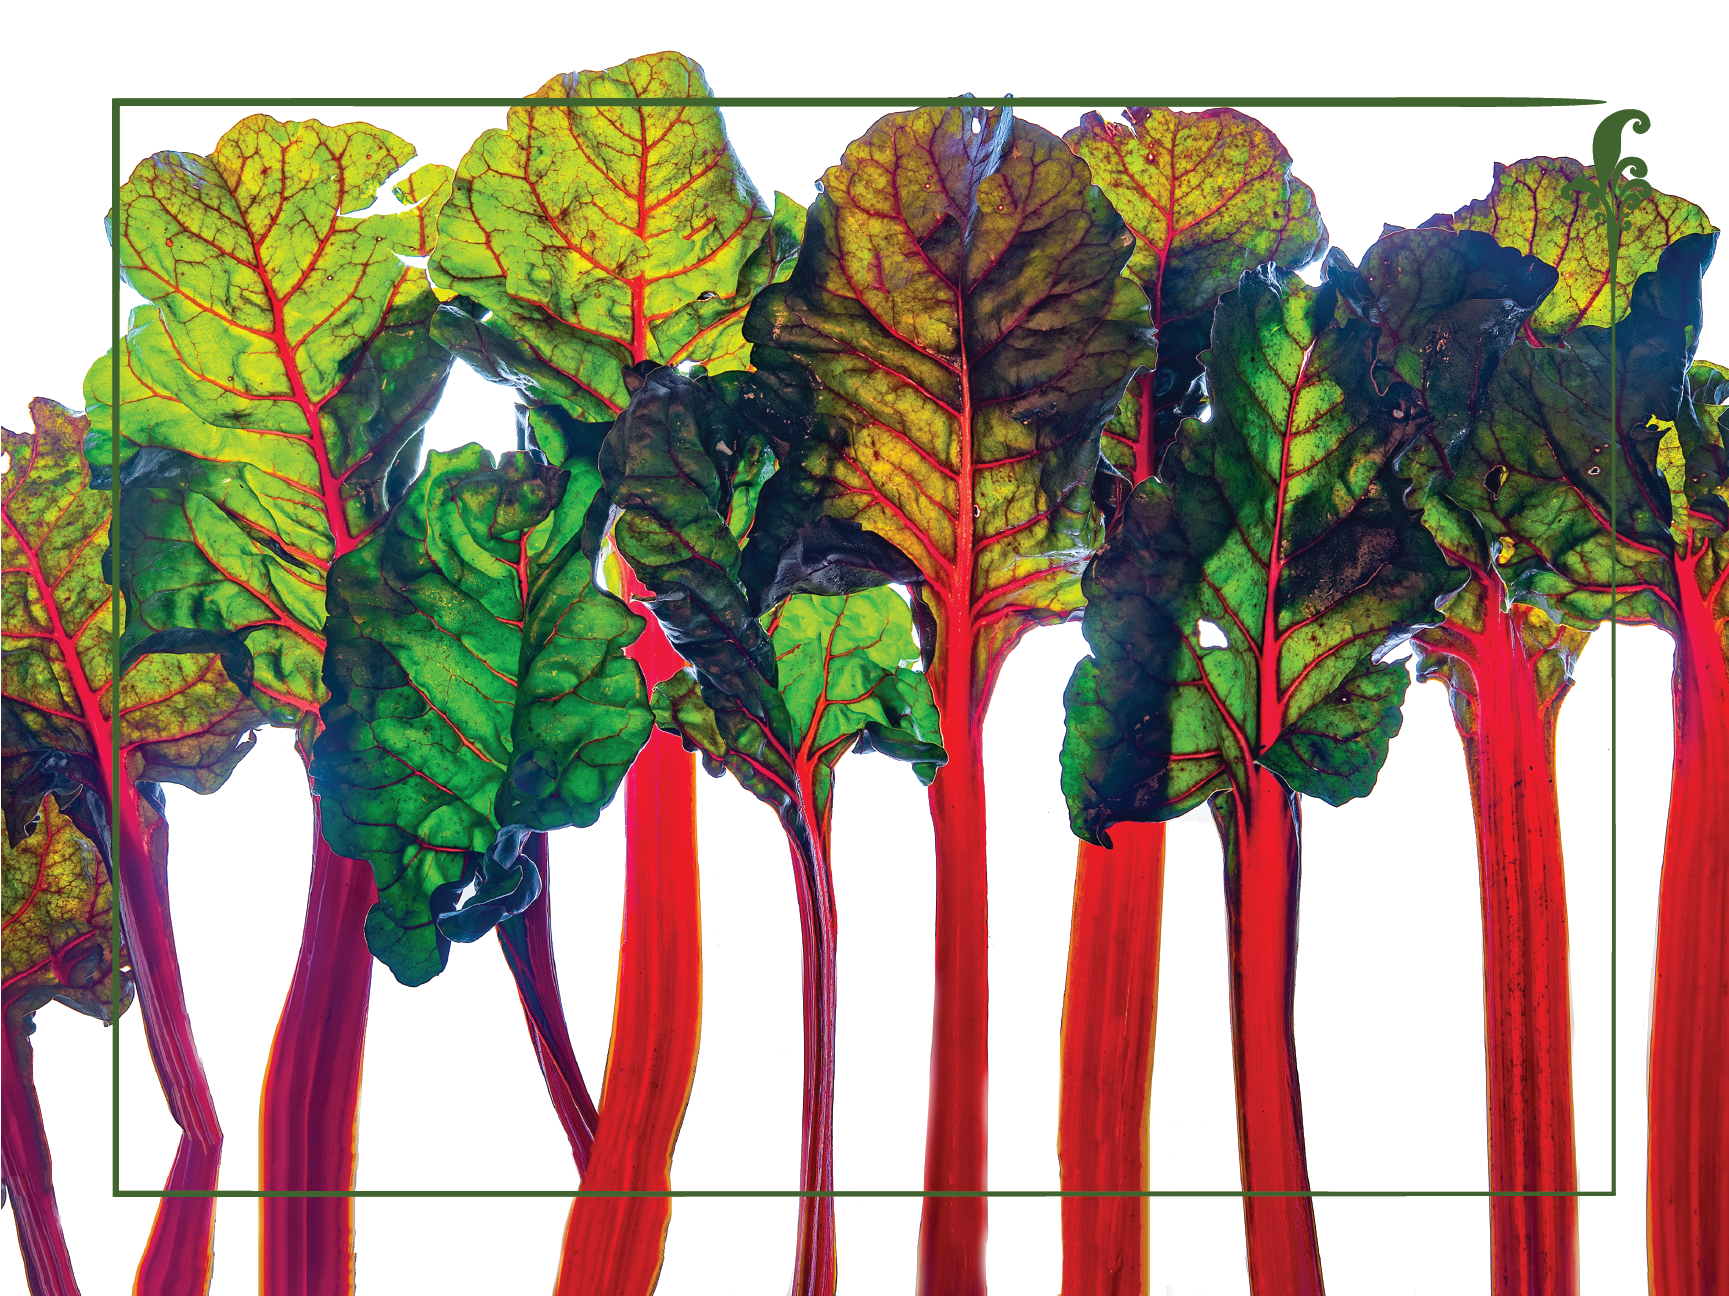 "Rainbow Chard 18"" x 24"" Vinyl Wall Decal Poster - Local Foods - Farmer's Market - Vegetables - Nutrition Education Store"